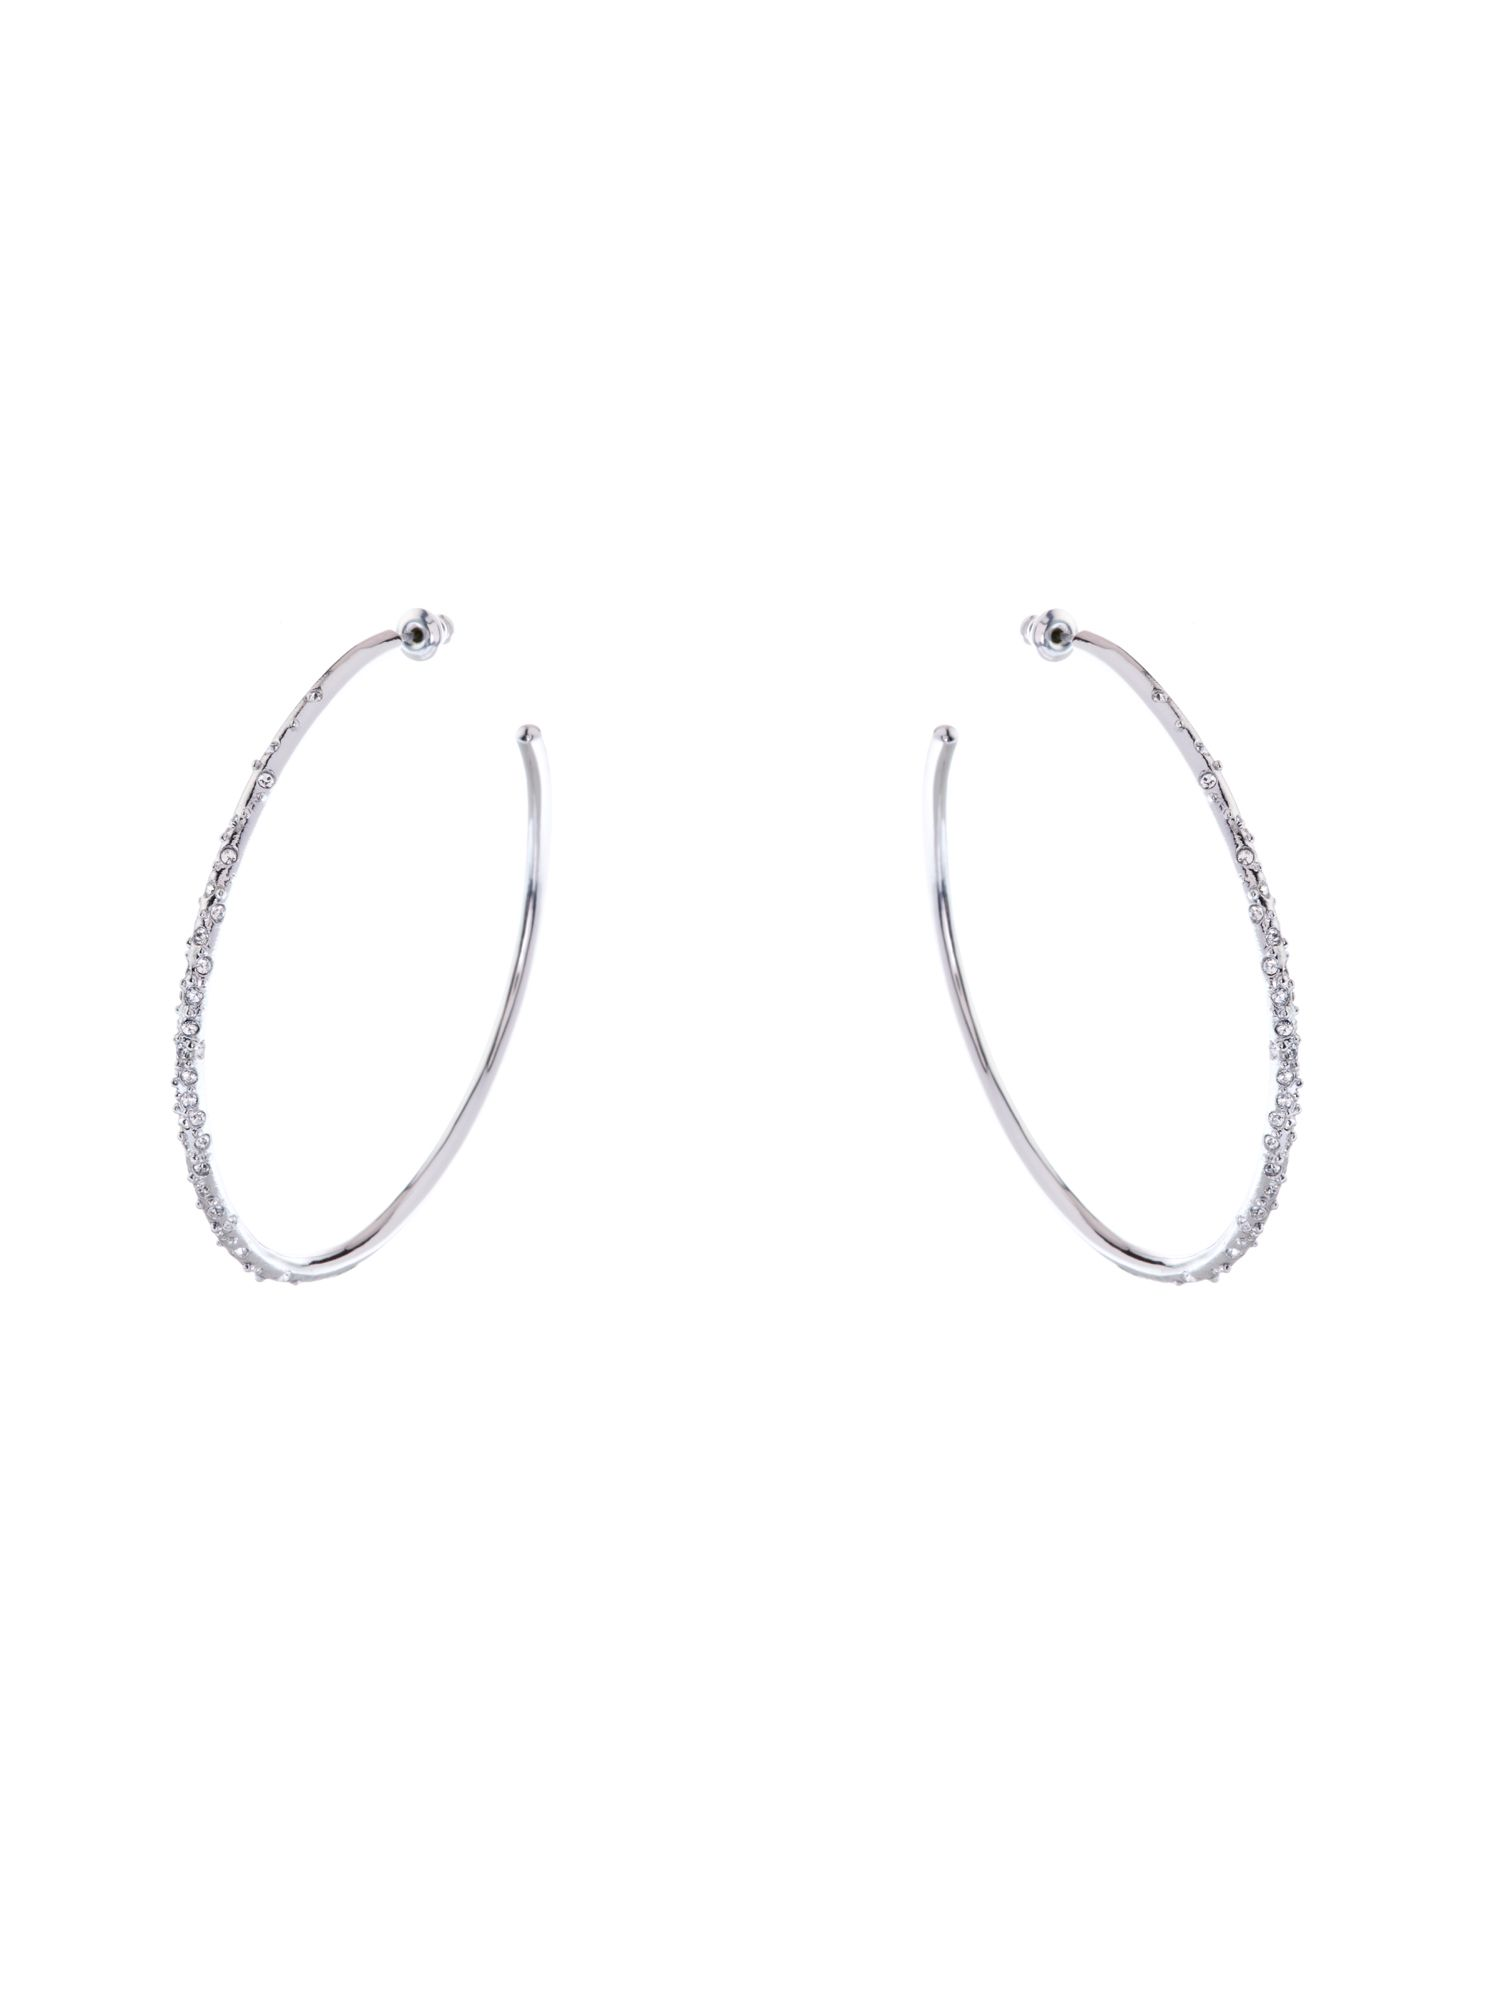 Karen Millen Crystal Sprinkle Earrings